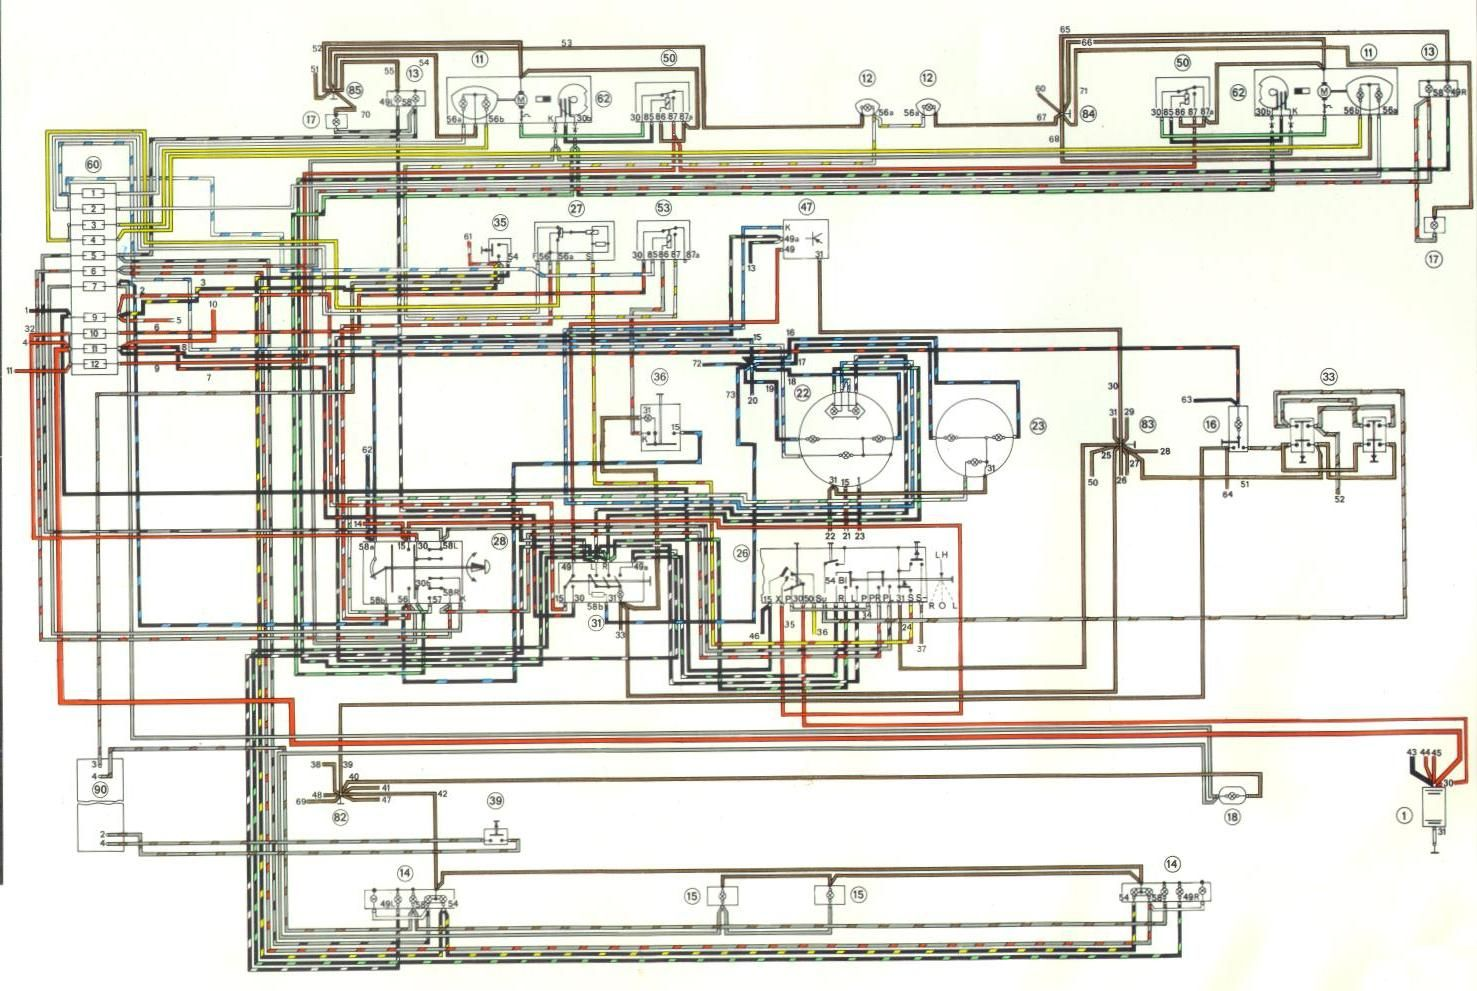 1973 porsche 914 wiring diagram for two element hot water heater schematic electrical 73 part 1 misc 964